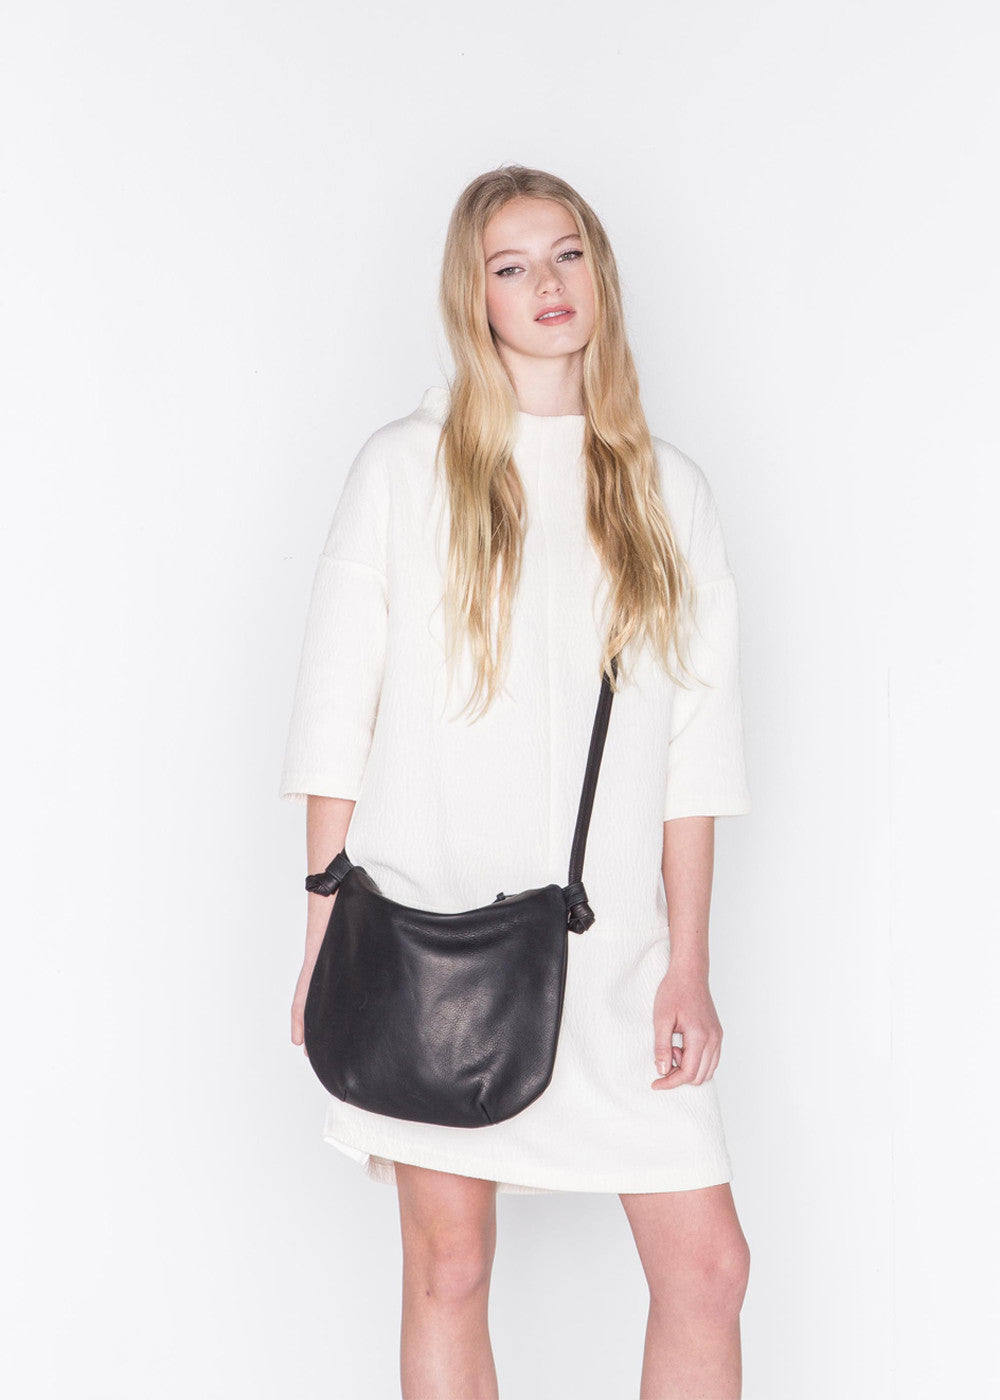 Erin Templeton BYOB Bag in Black — New Classics Studios